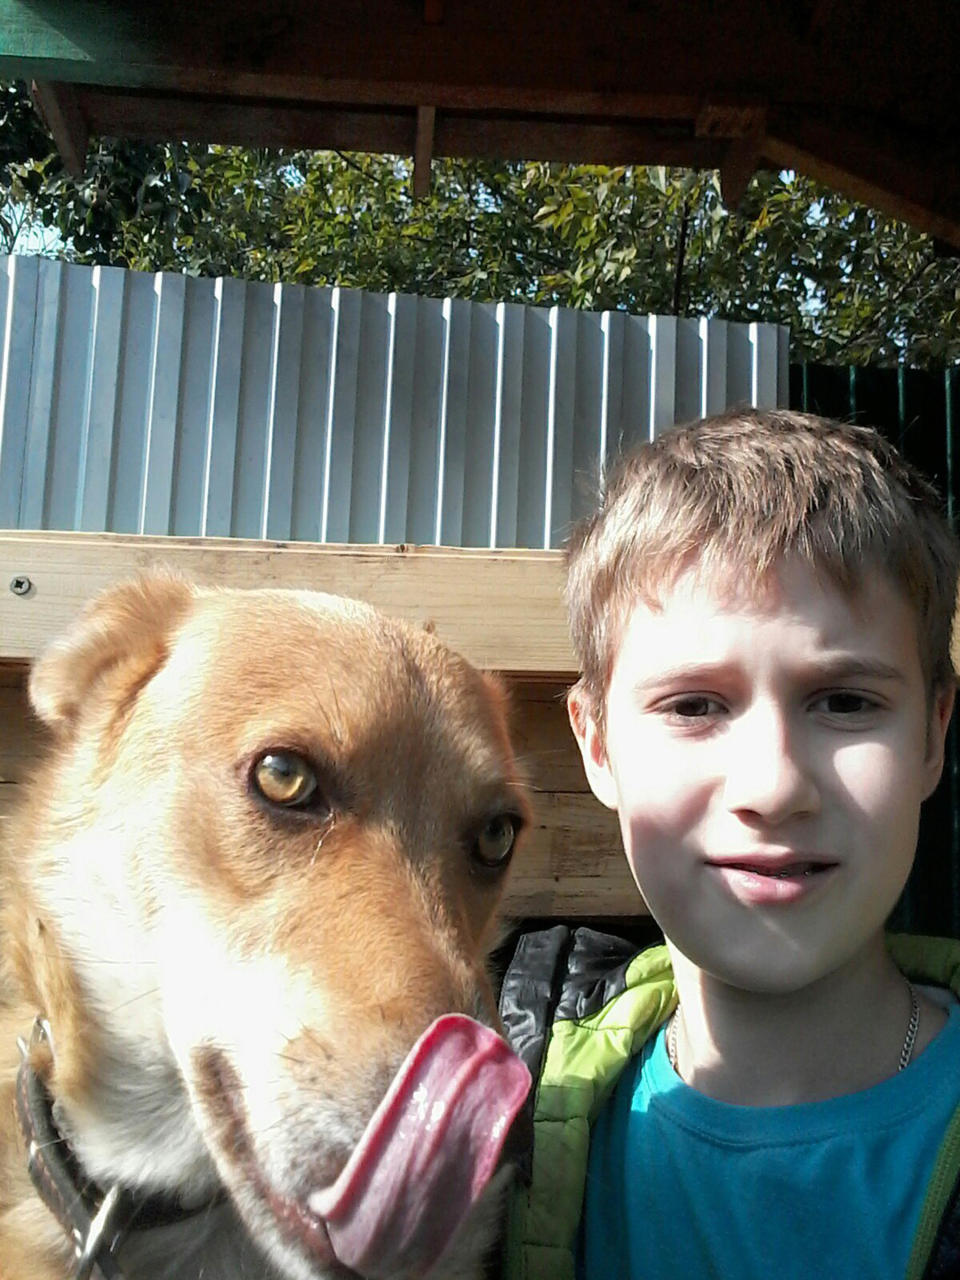 Pictured is 13-year-old Ilya with a dog. He was allegedly stabbed in his sleep.